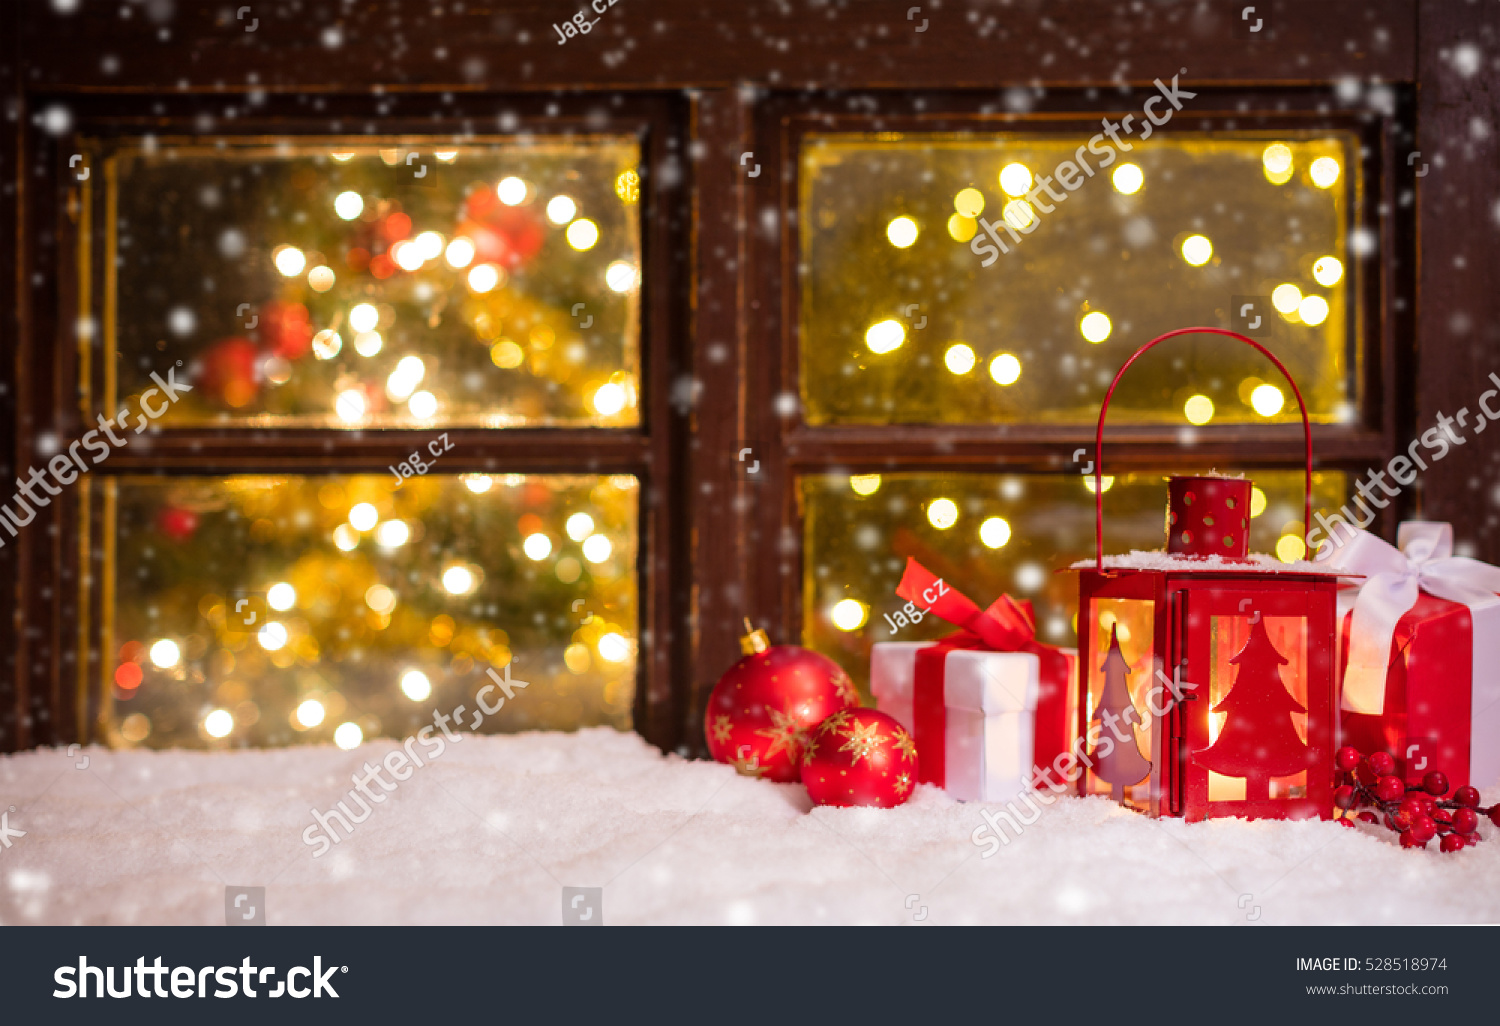 atmospheric christmas window sill with decoration and blur tree wth lights inside - Window Sill Christmas Decorations